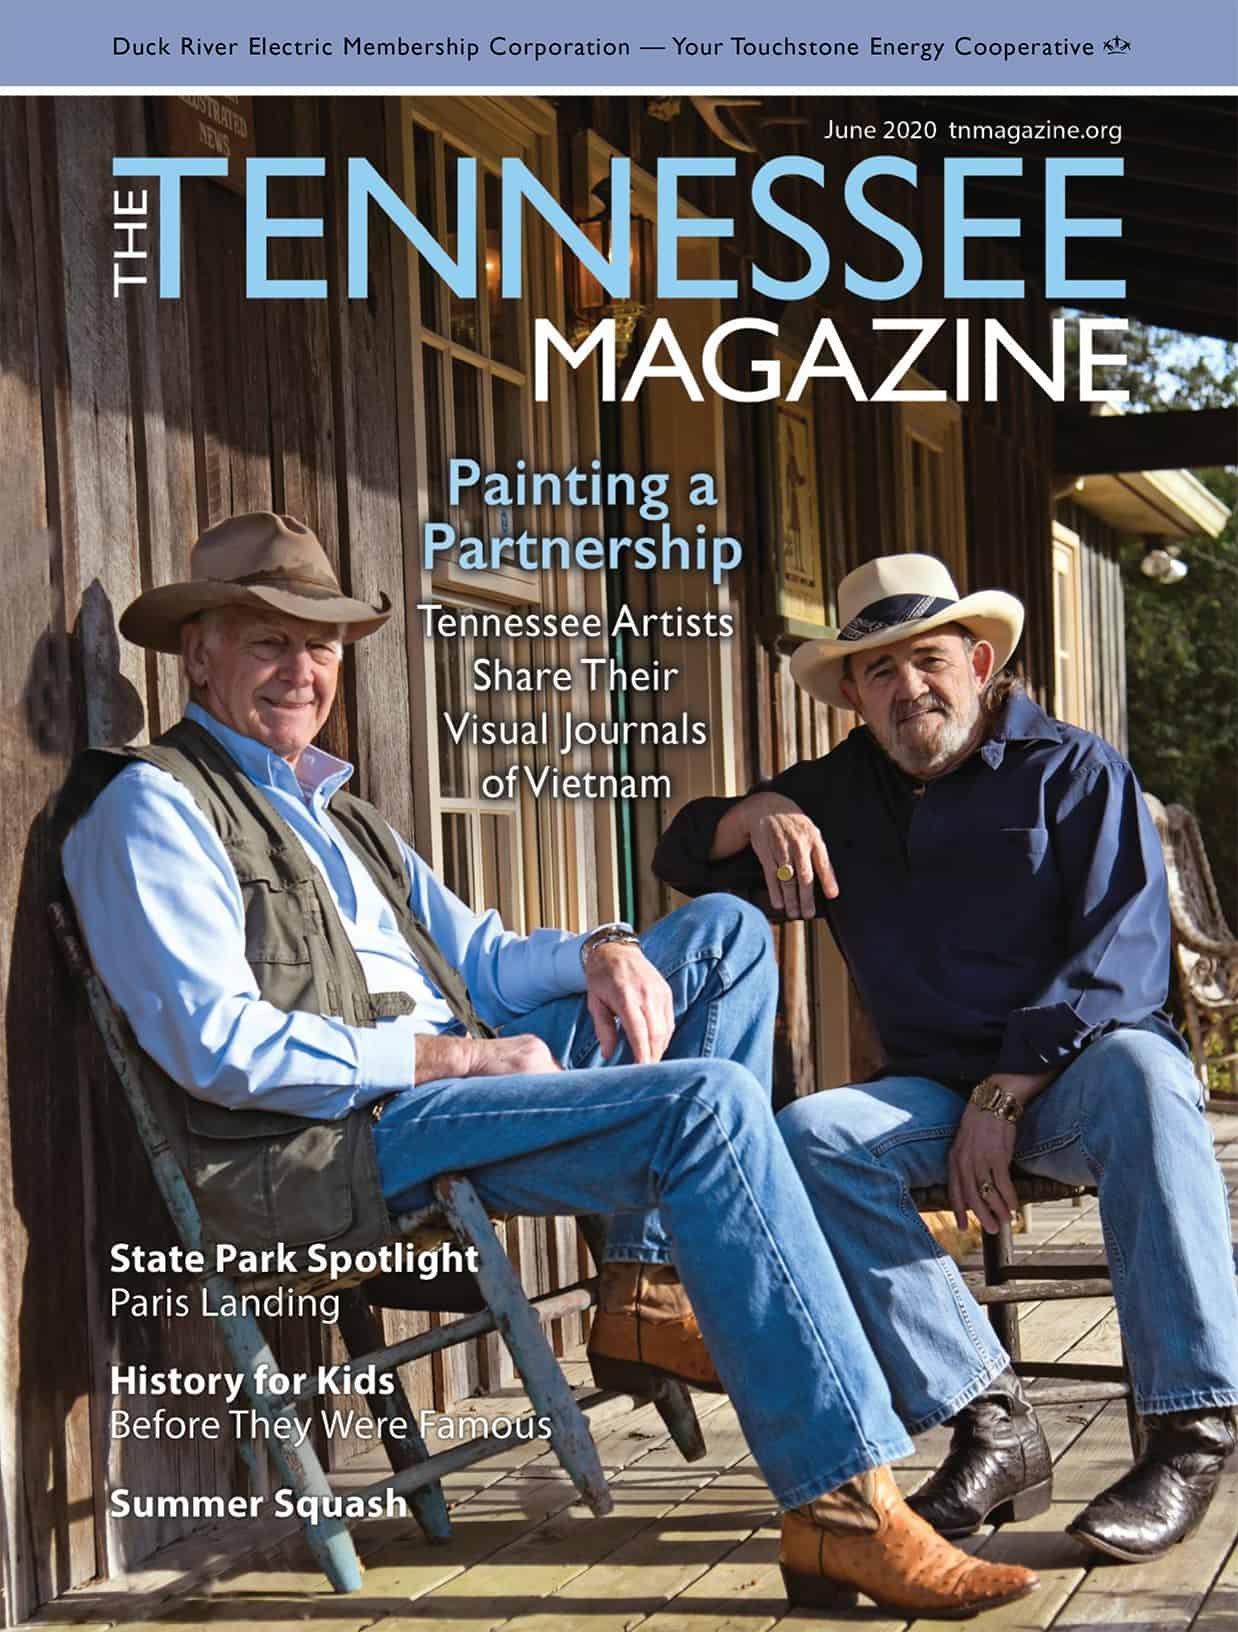 Tennessee Magazine June 2020 Cover